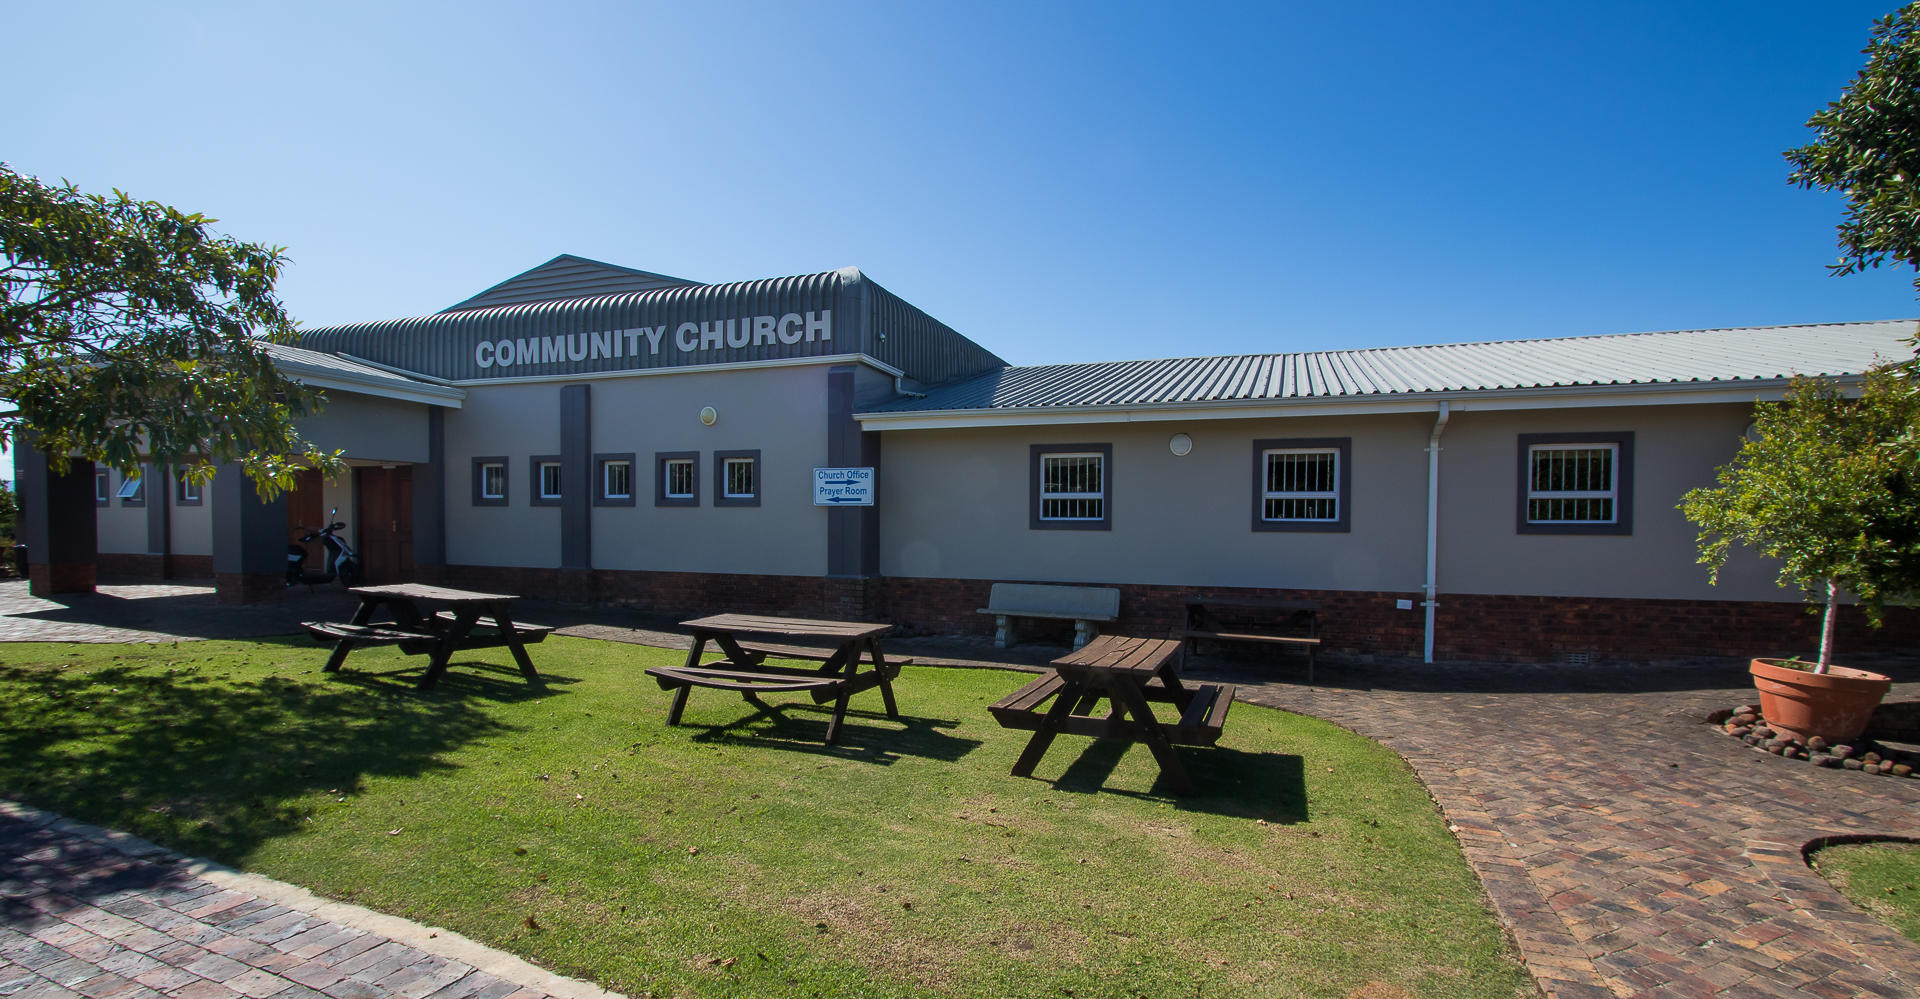 Plett Community Church